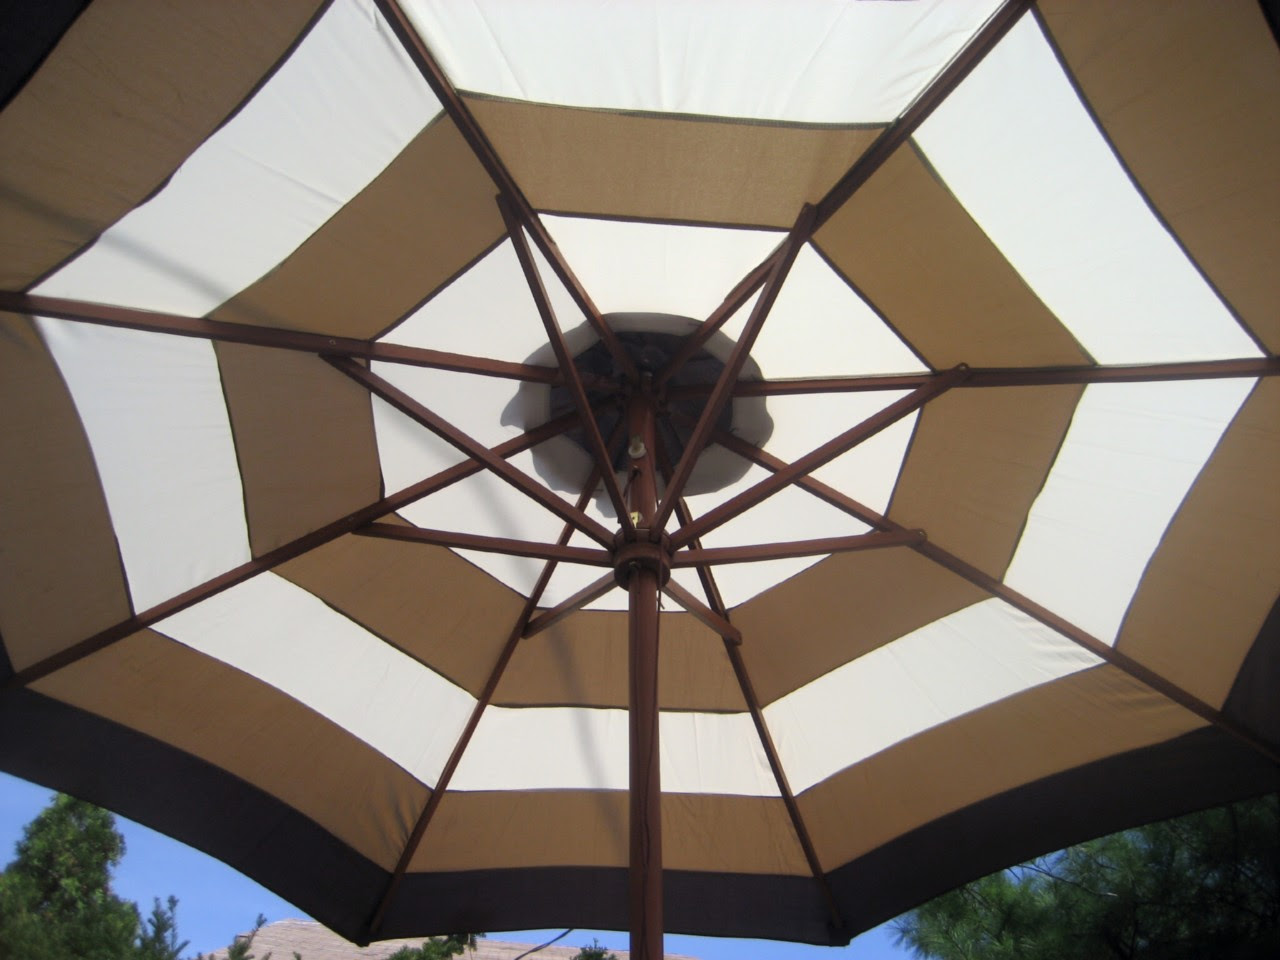 9 FT.MARKET PATIO UMBRELLA BROWN AND BEIGE STRIPE NEW | eBay